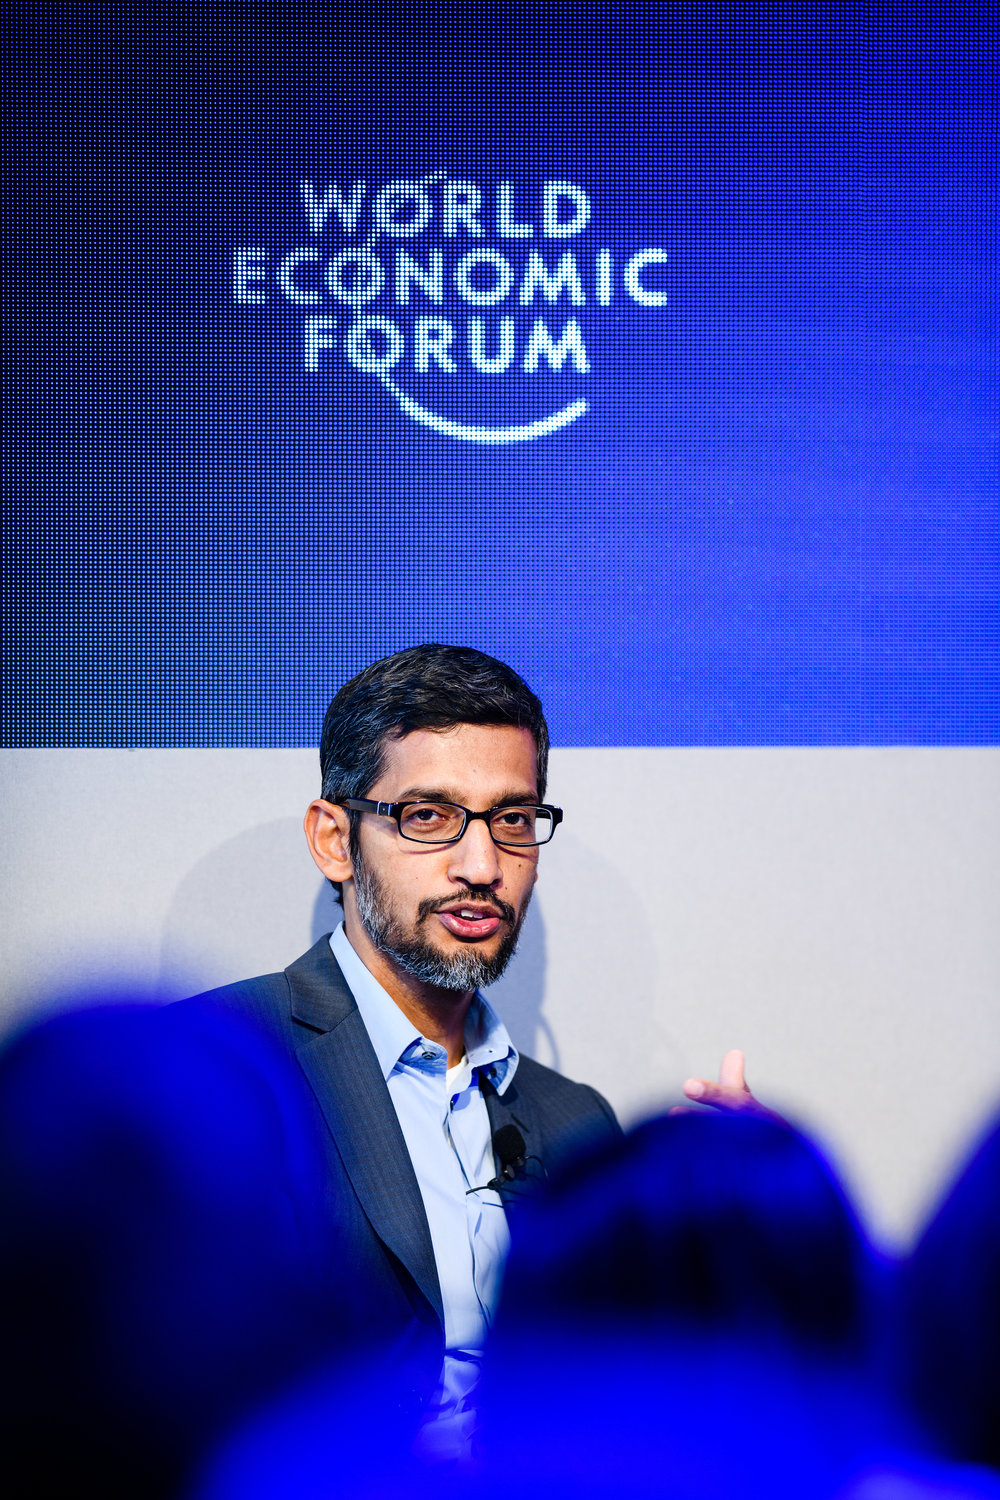 An Insight, An Idea with Sundar Pichai